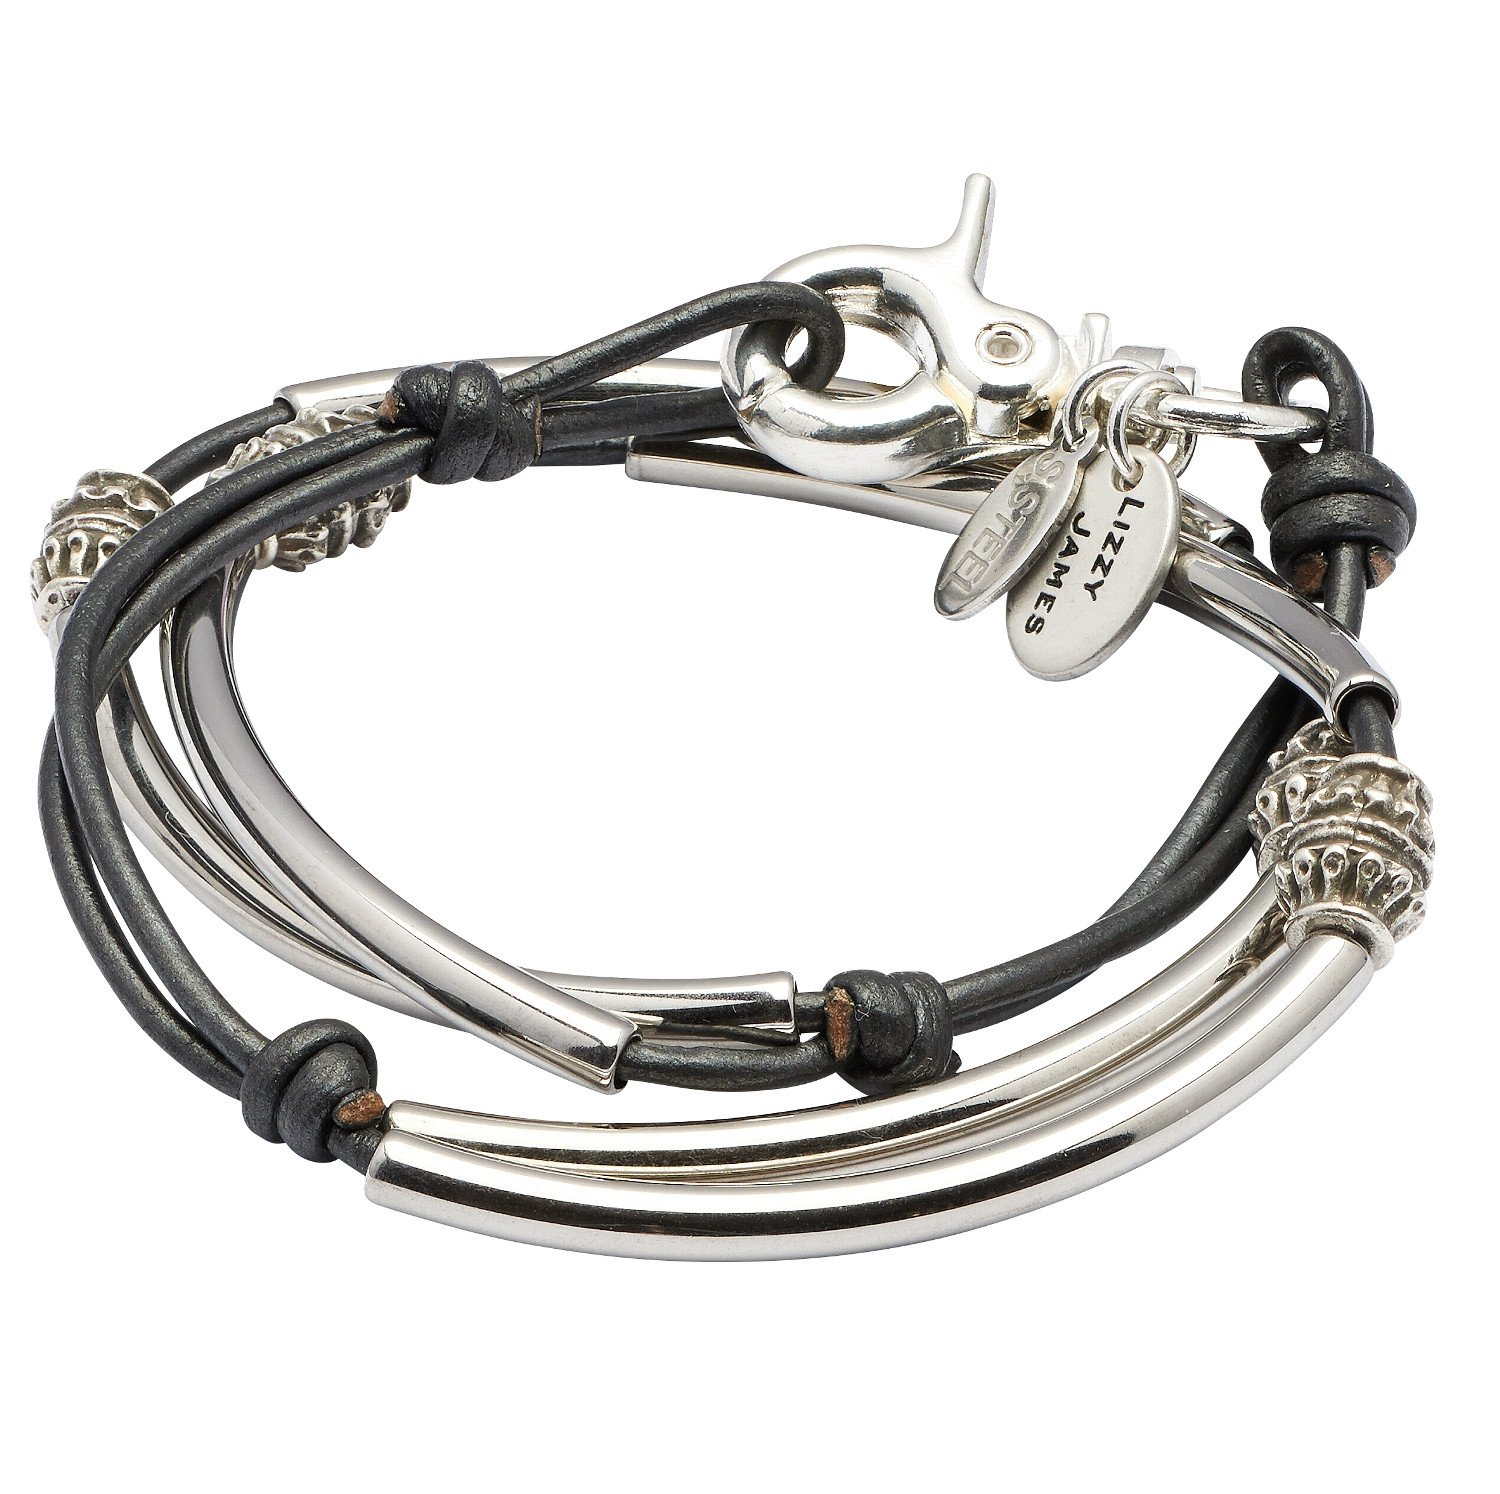 Mini Alex in Stainless Steel Medium Bracelet With Metallic Gunmetal Leather by Lizzy James